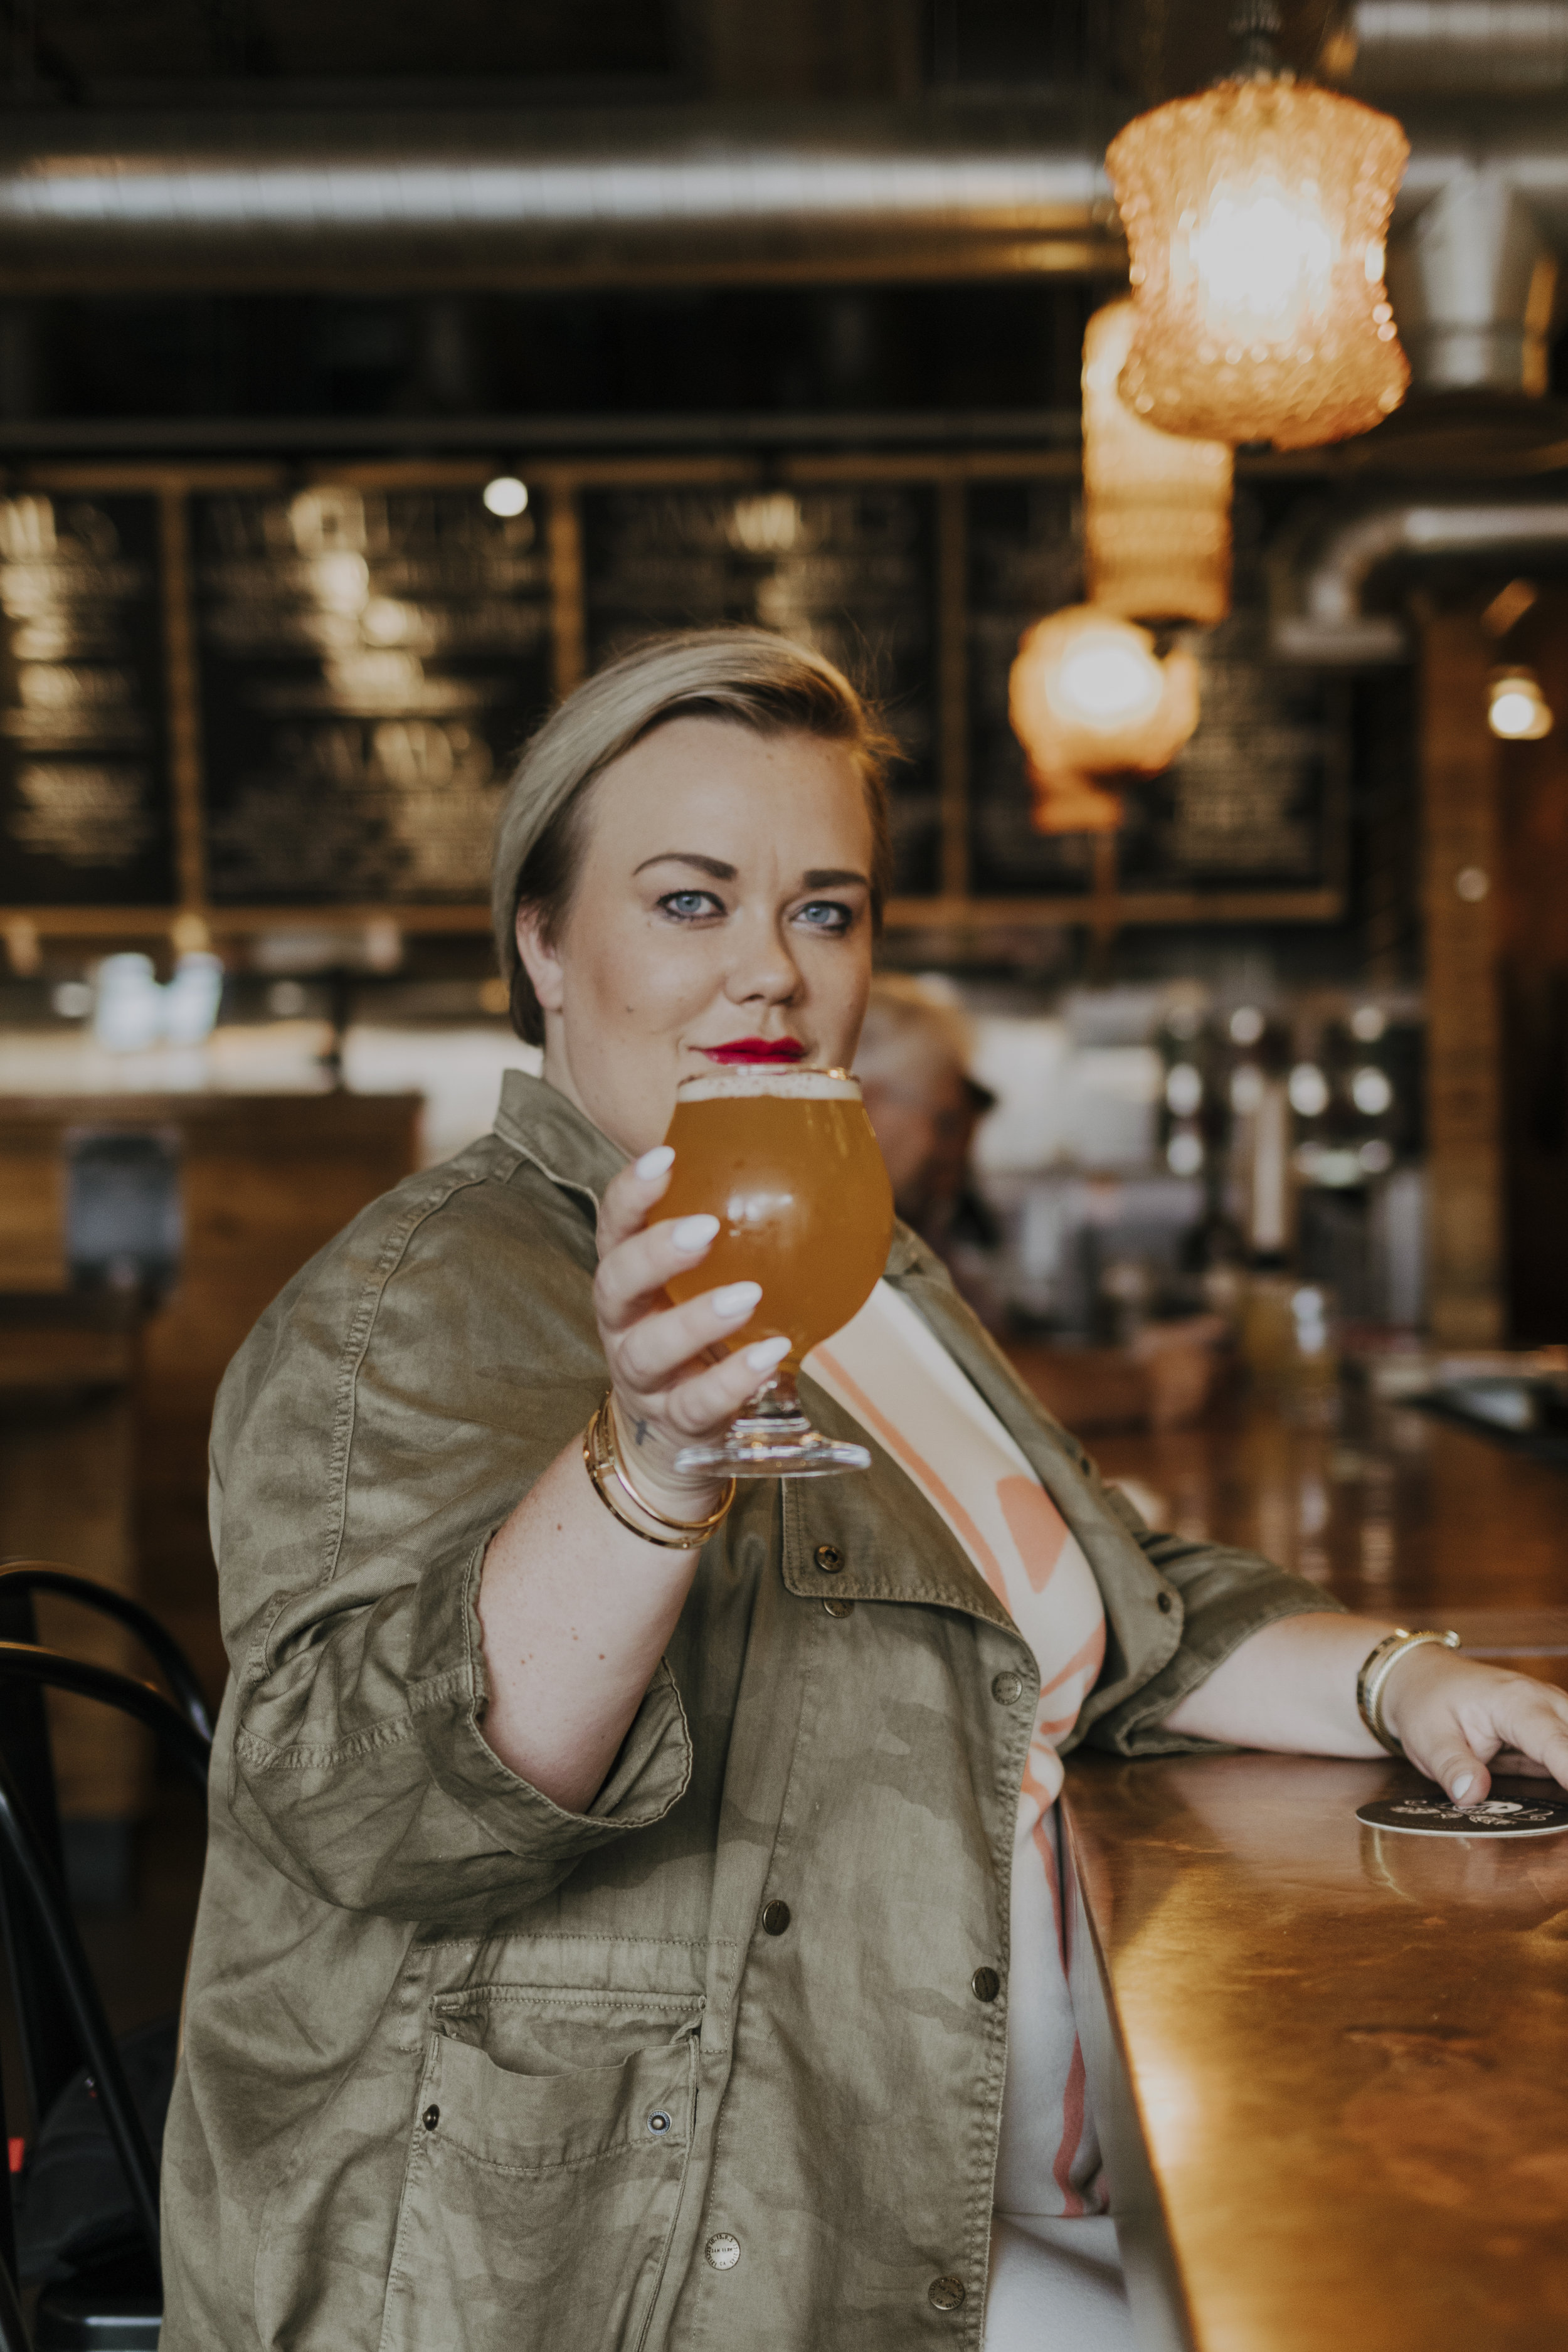 Local brewery's like  Jolly Pumpkin  in Midtown are great places to visit for the seasonal brew. Photo credits: Daniela Lisi.